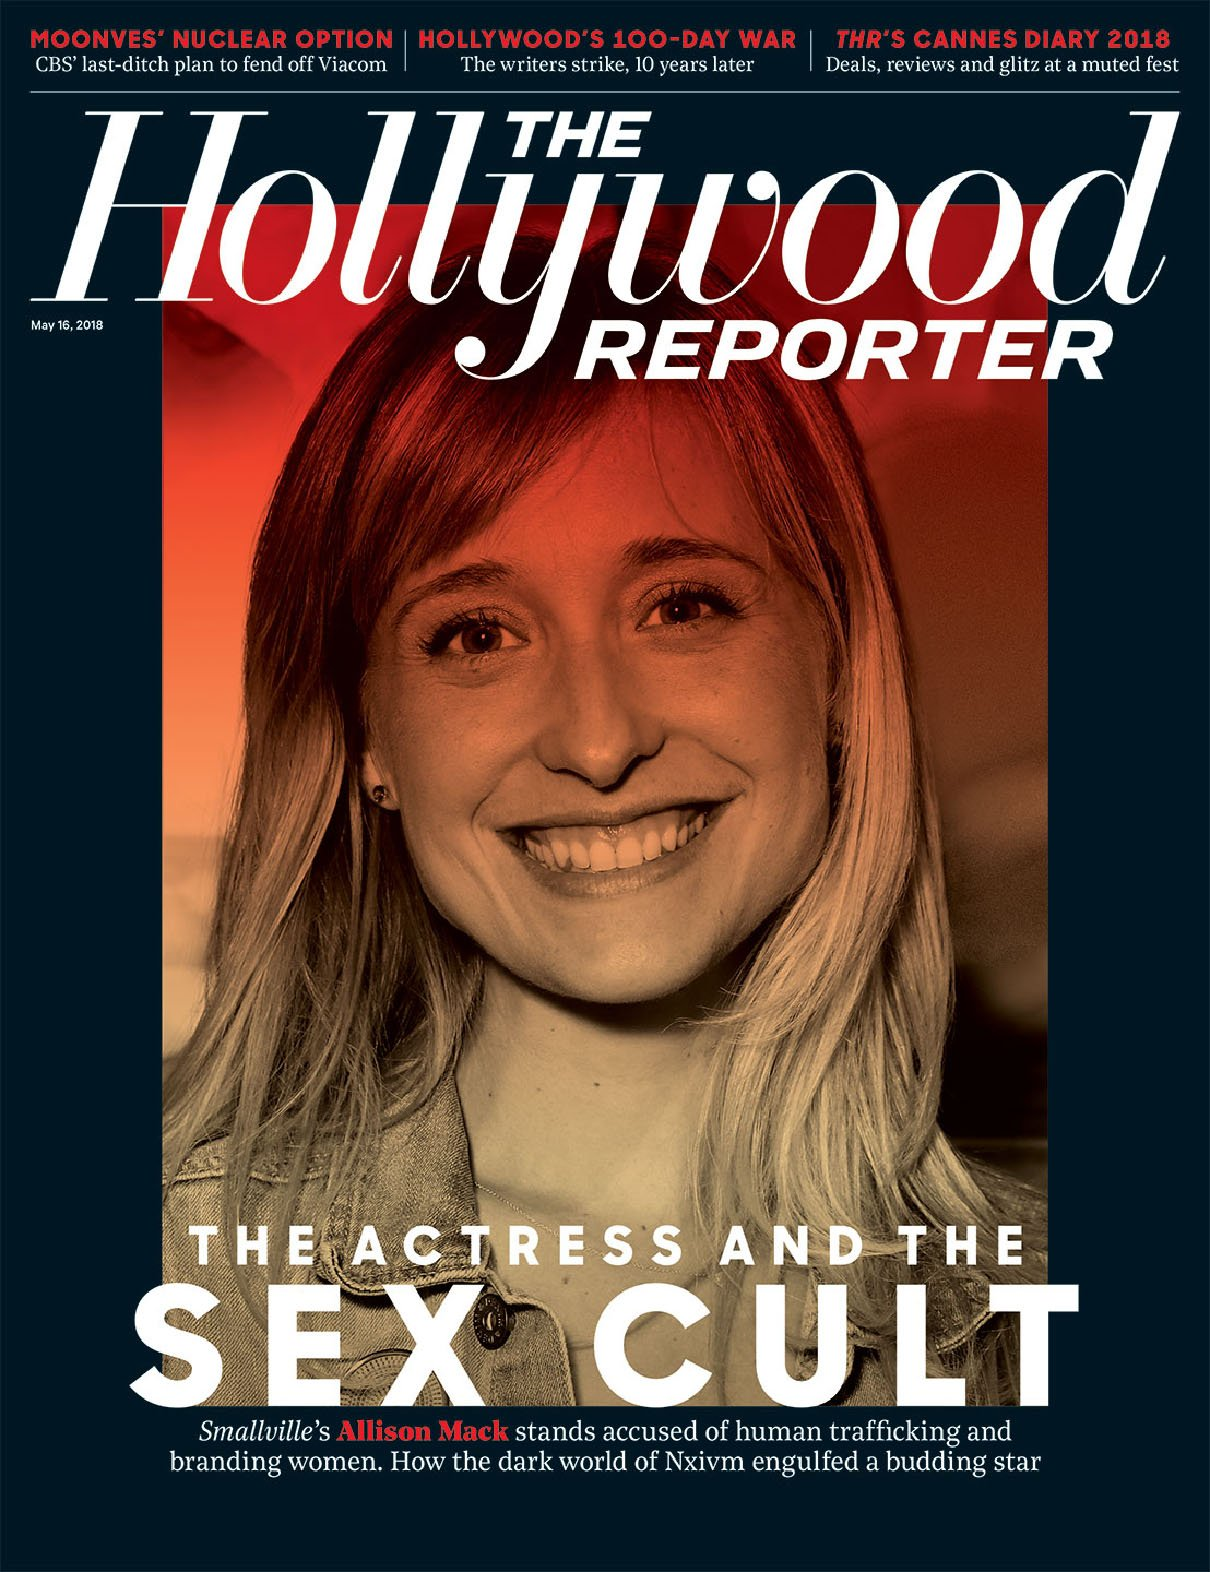 Download The Hollywood Reporter Magazine (May 16, 2018) The Actress and the Sex Cult Cover pdf epub